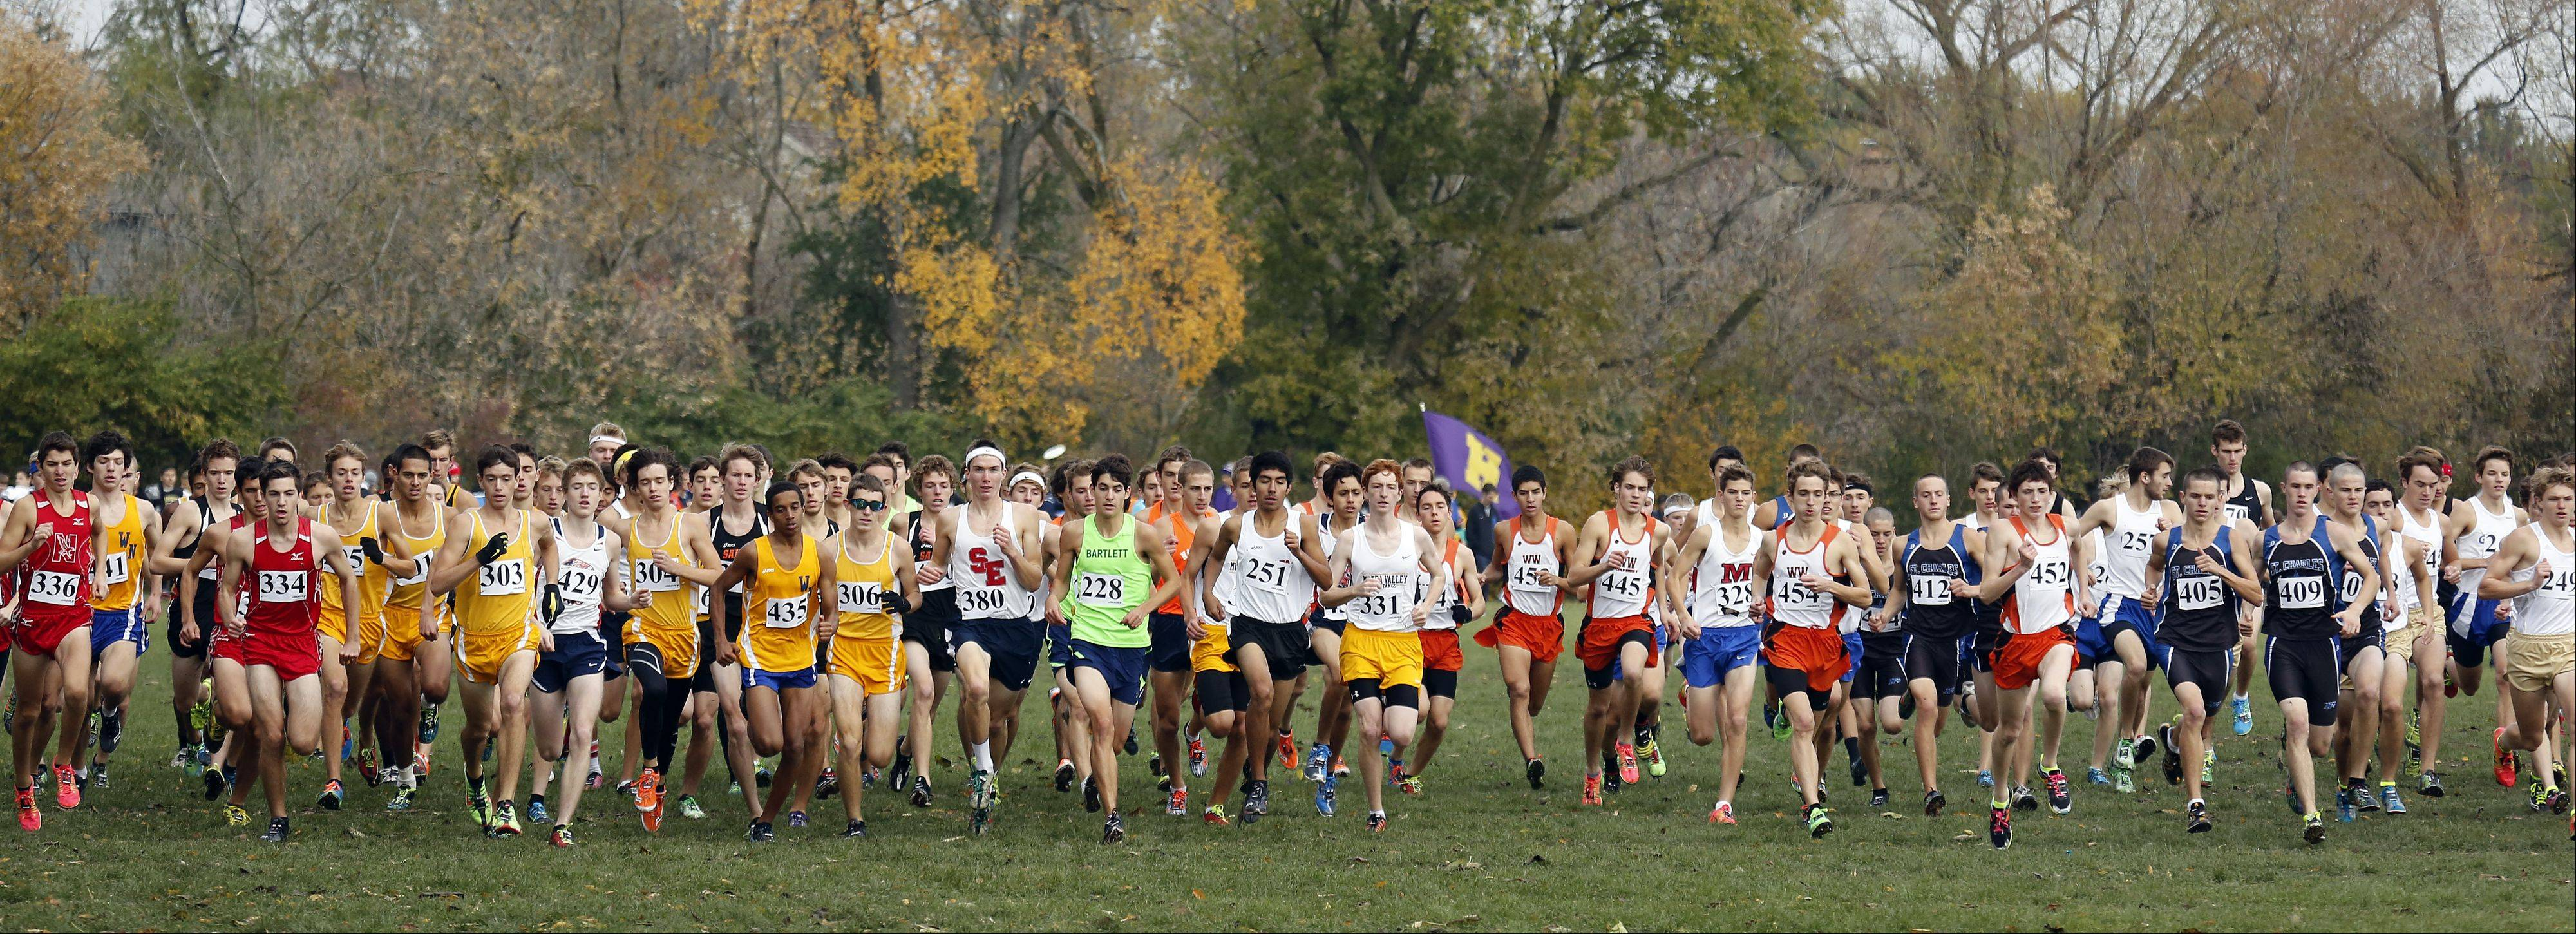 The start of the Waubonsie Valley boys cross country Sectional in Aurora.